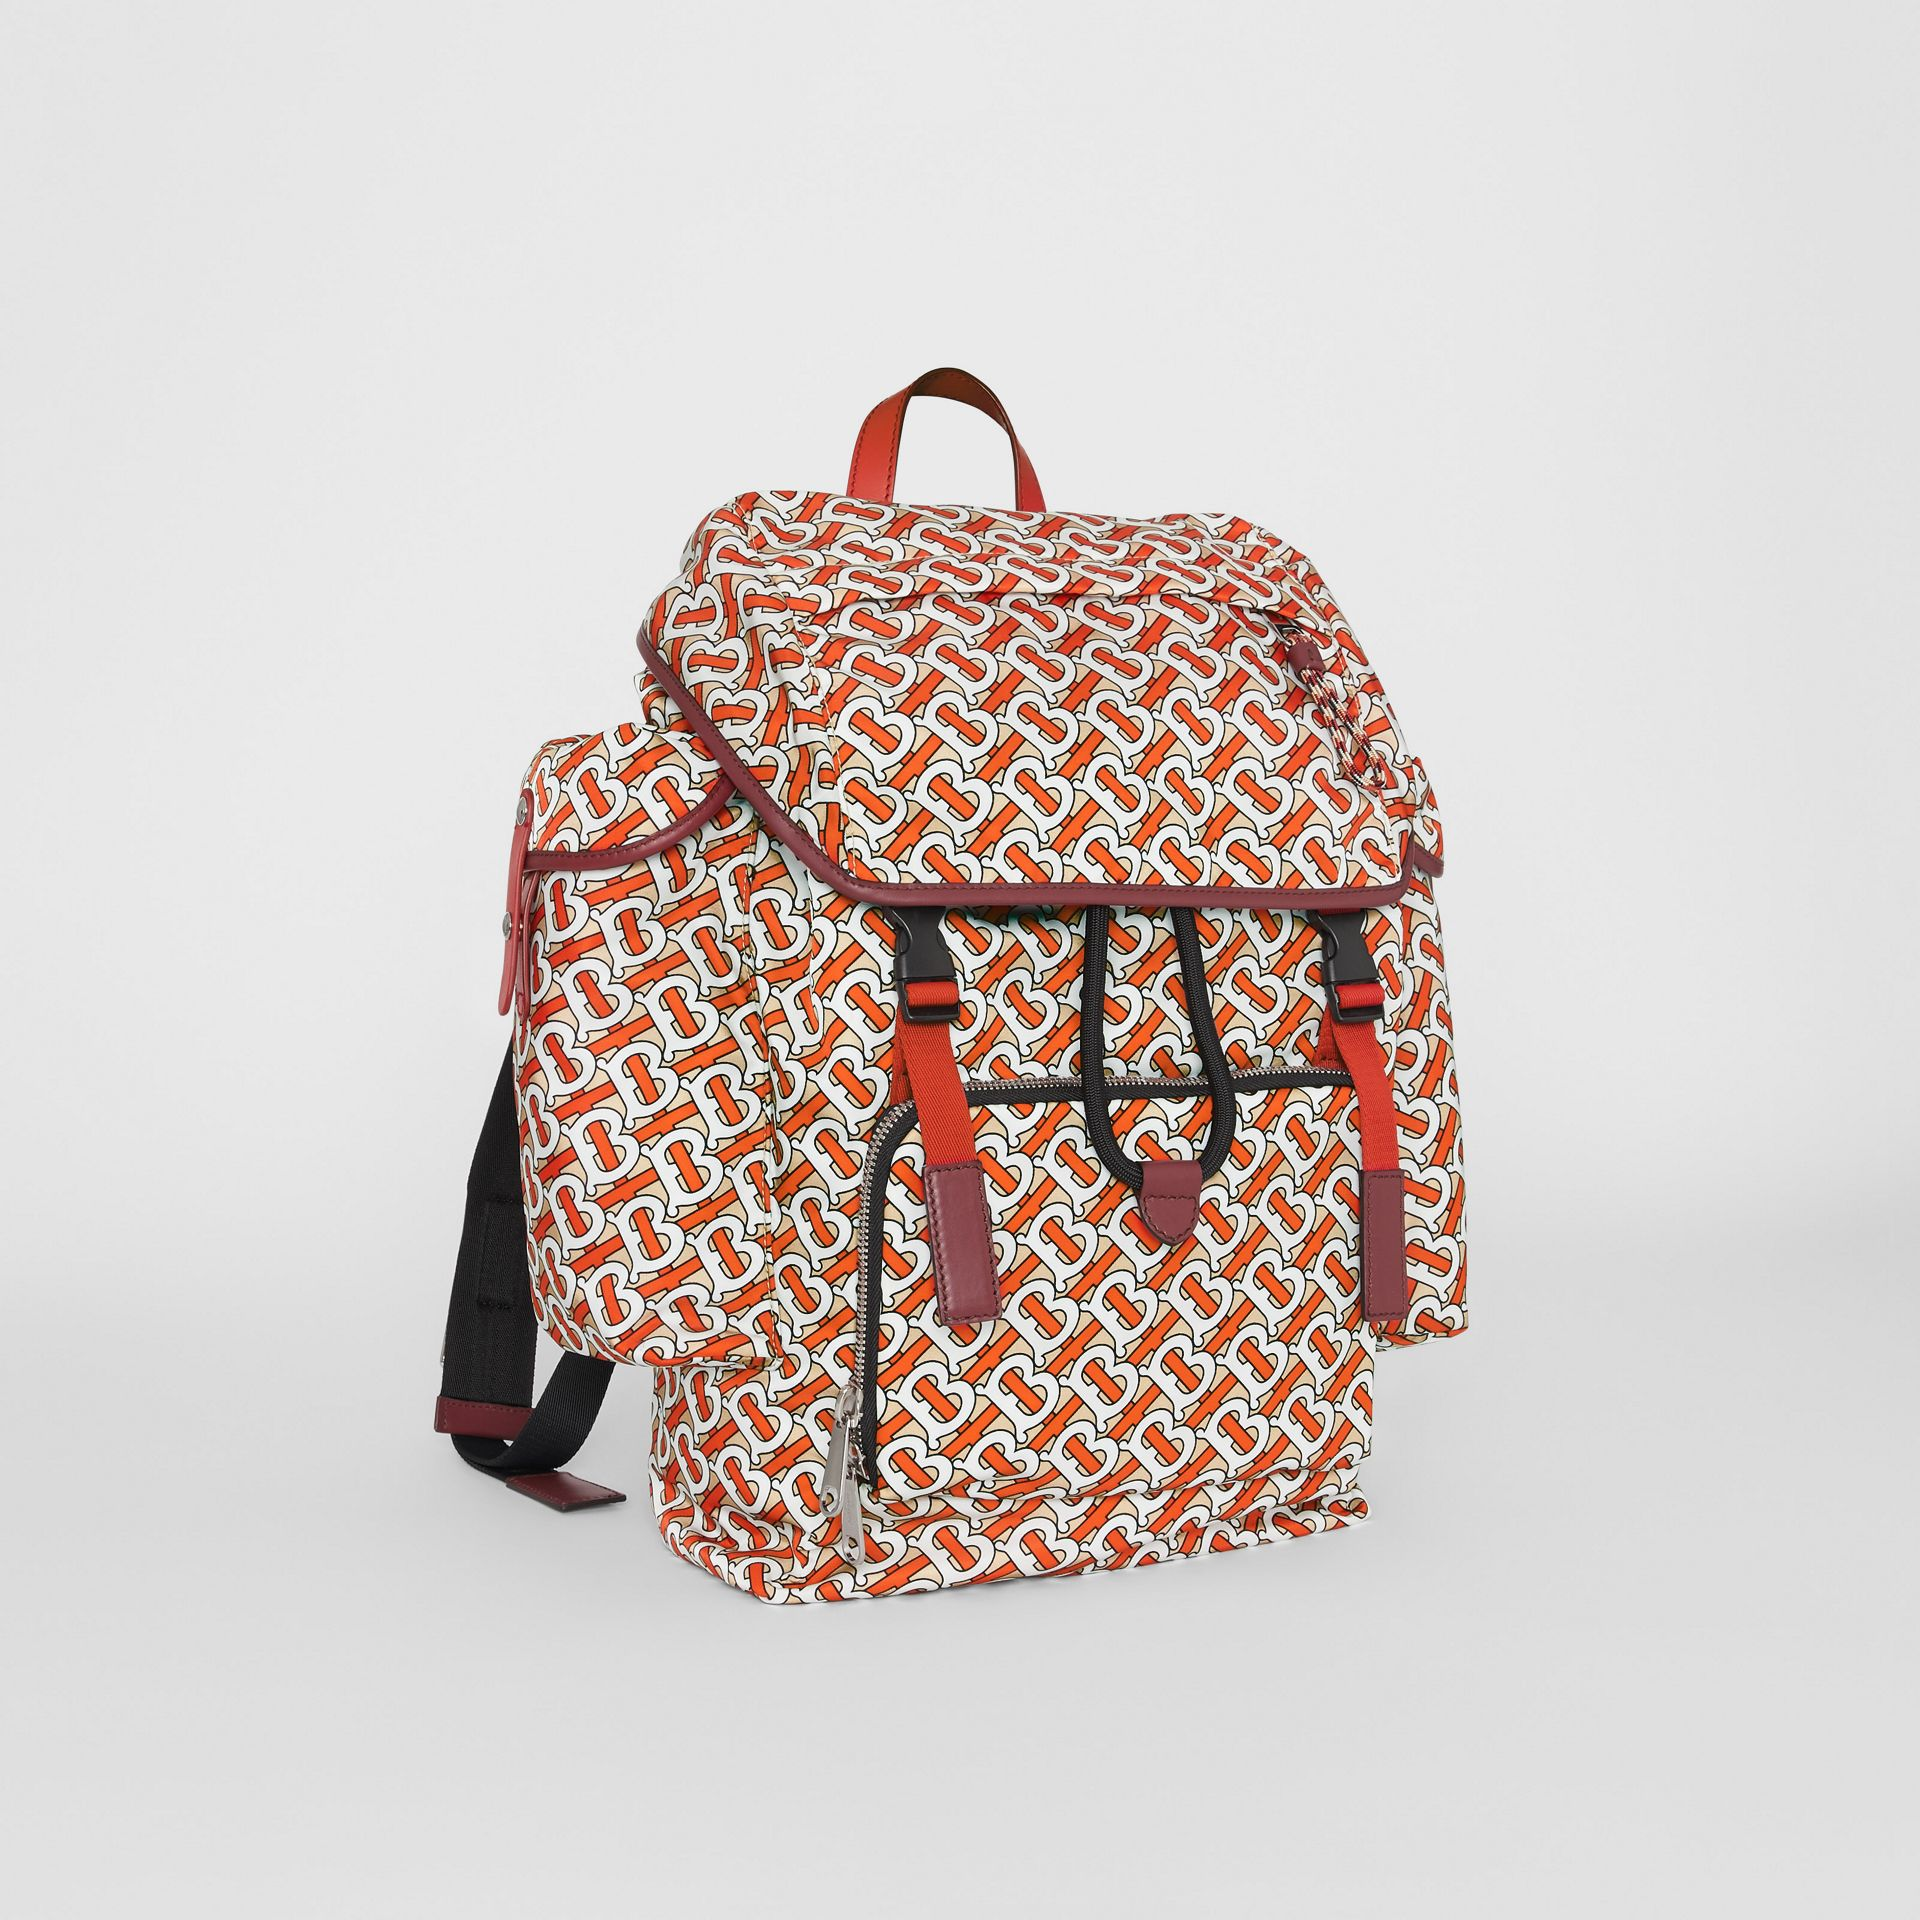 Medium Leather Trim Monogram Print Backpack in Vermilion - Men | Burberry - gallery image 5